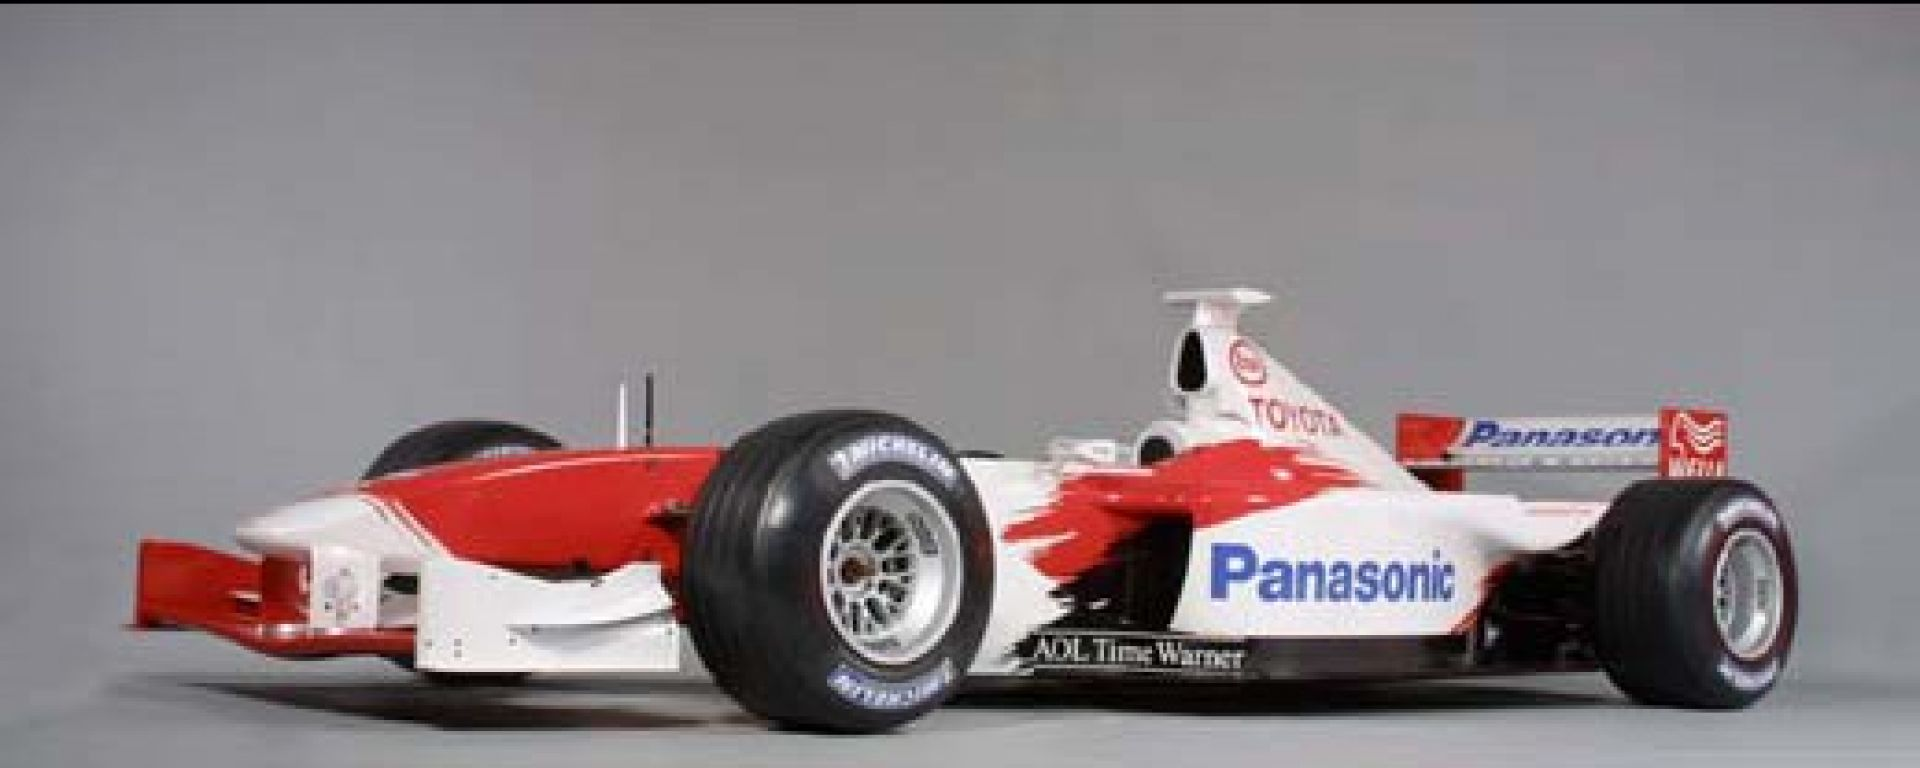 F1 2002: Toyota in pole position